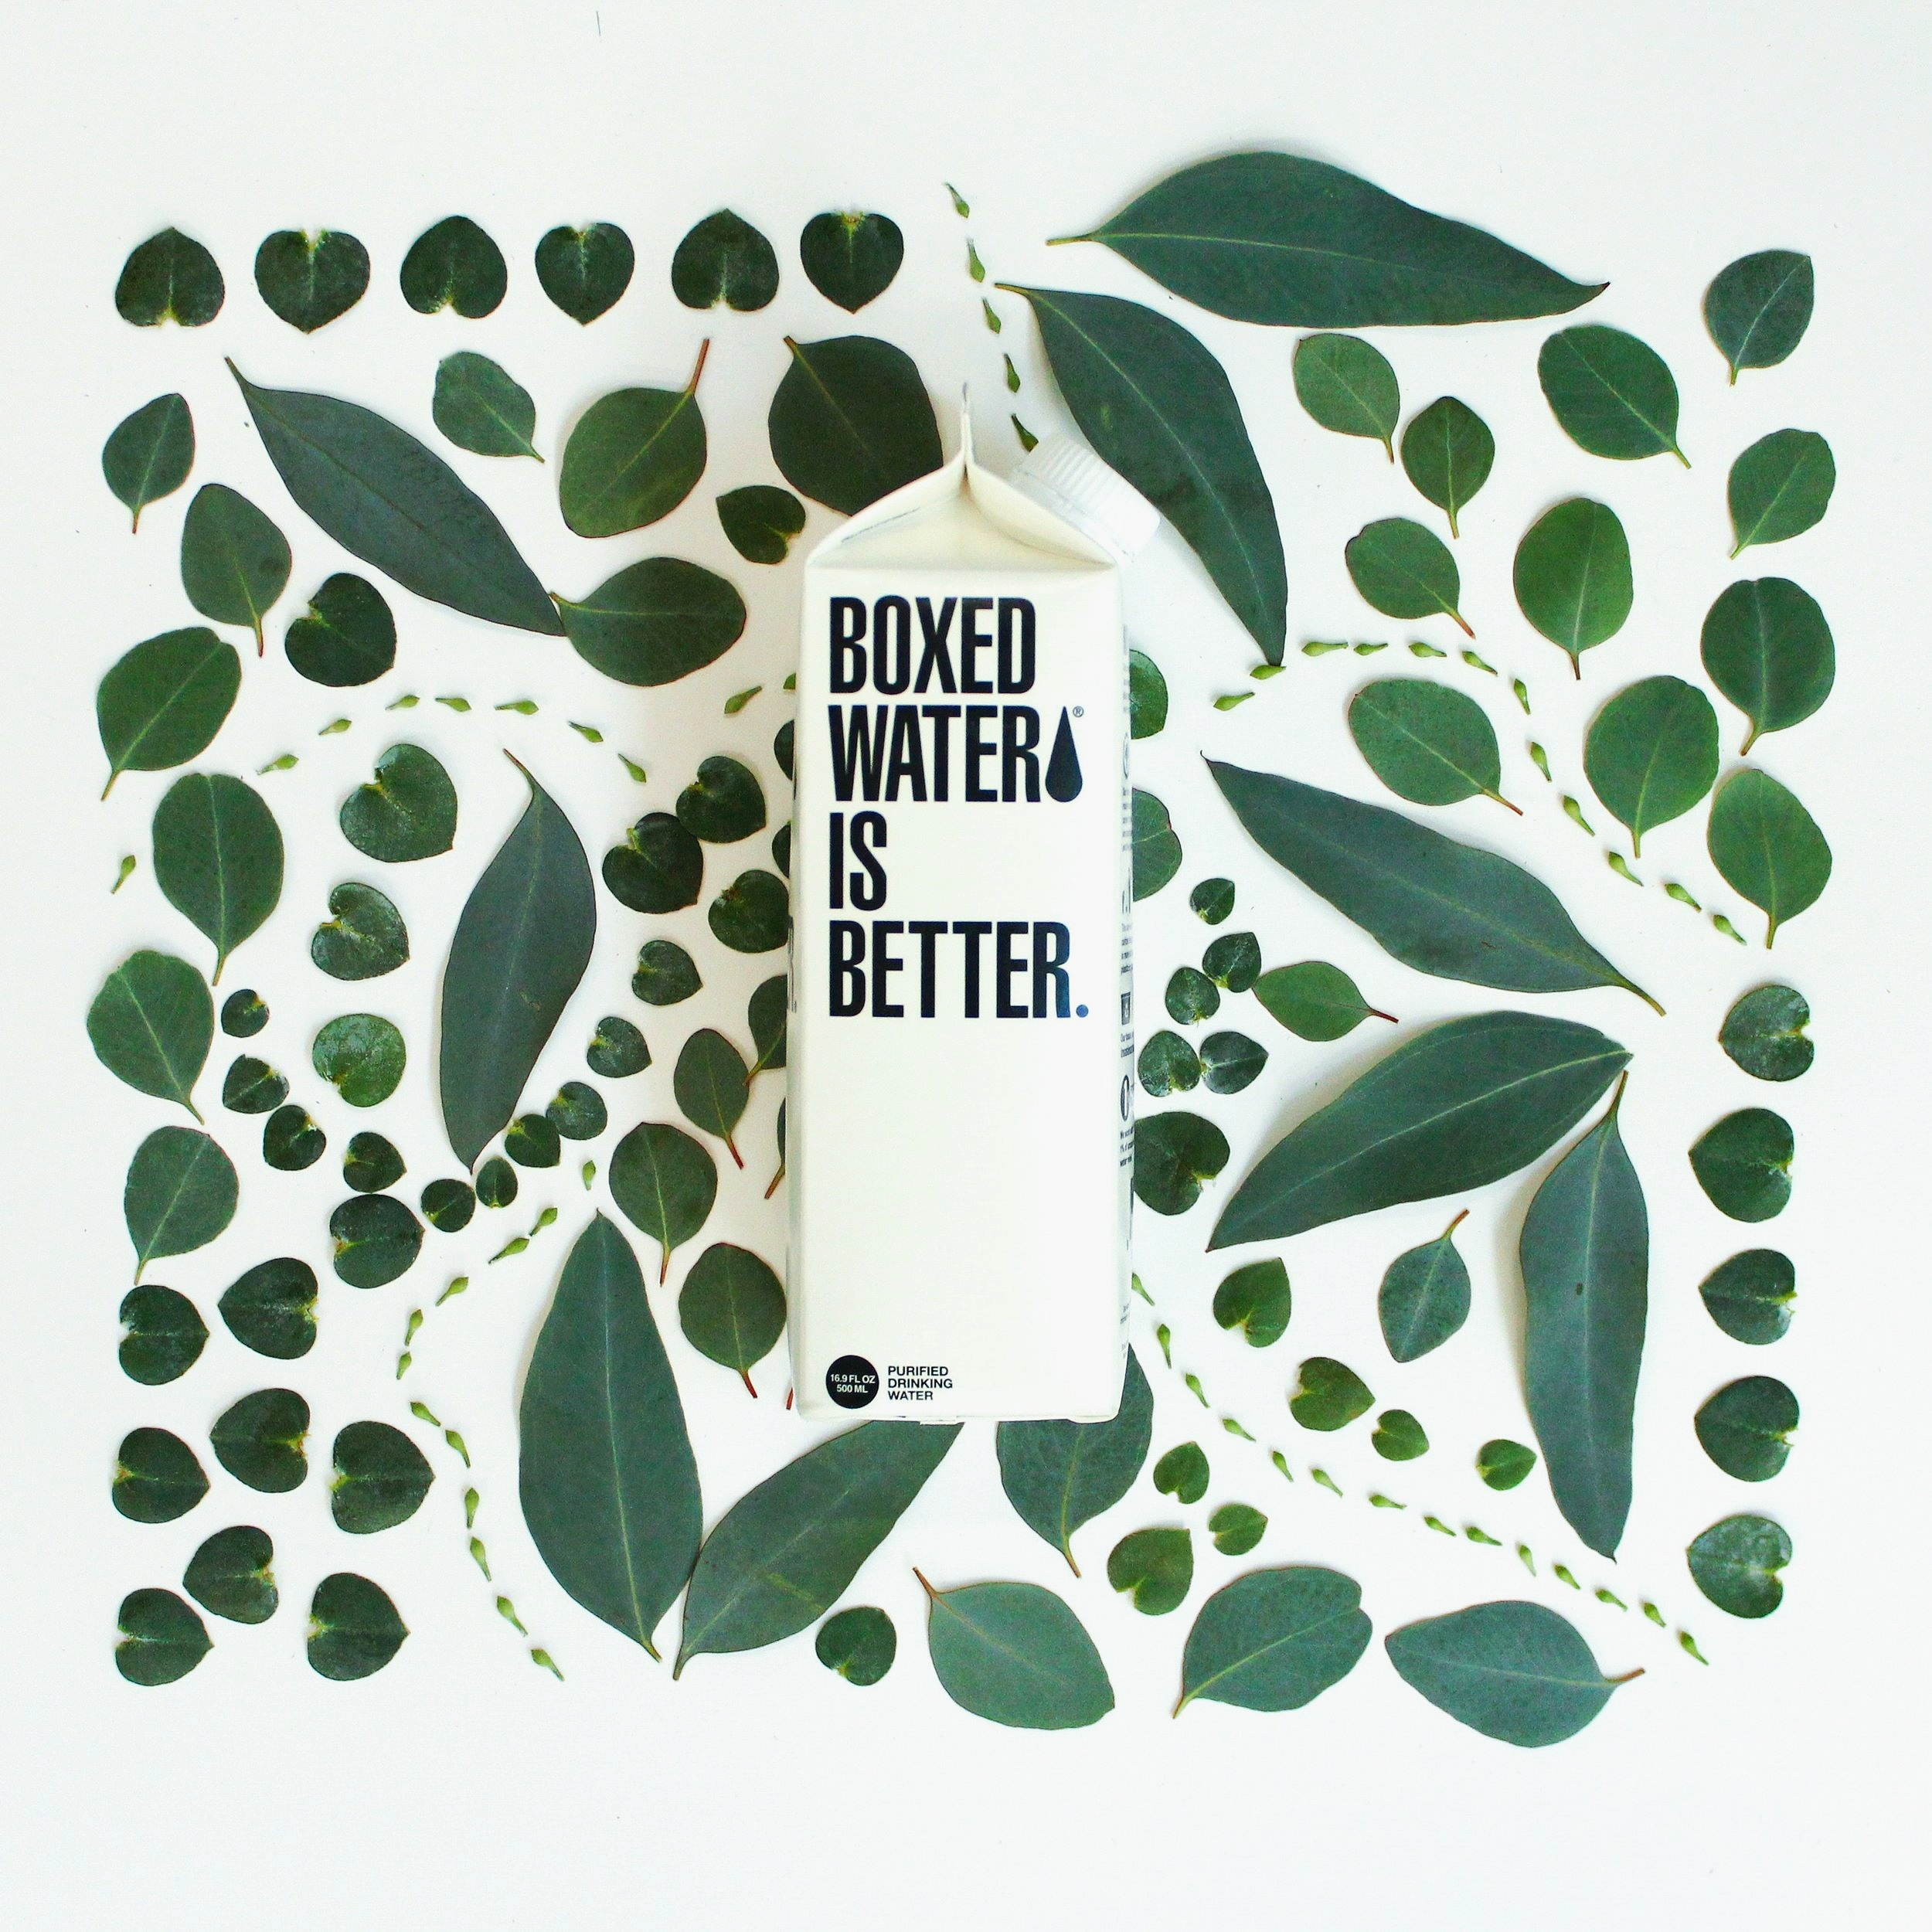 boxed-water-is-better.jpg